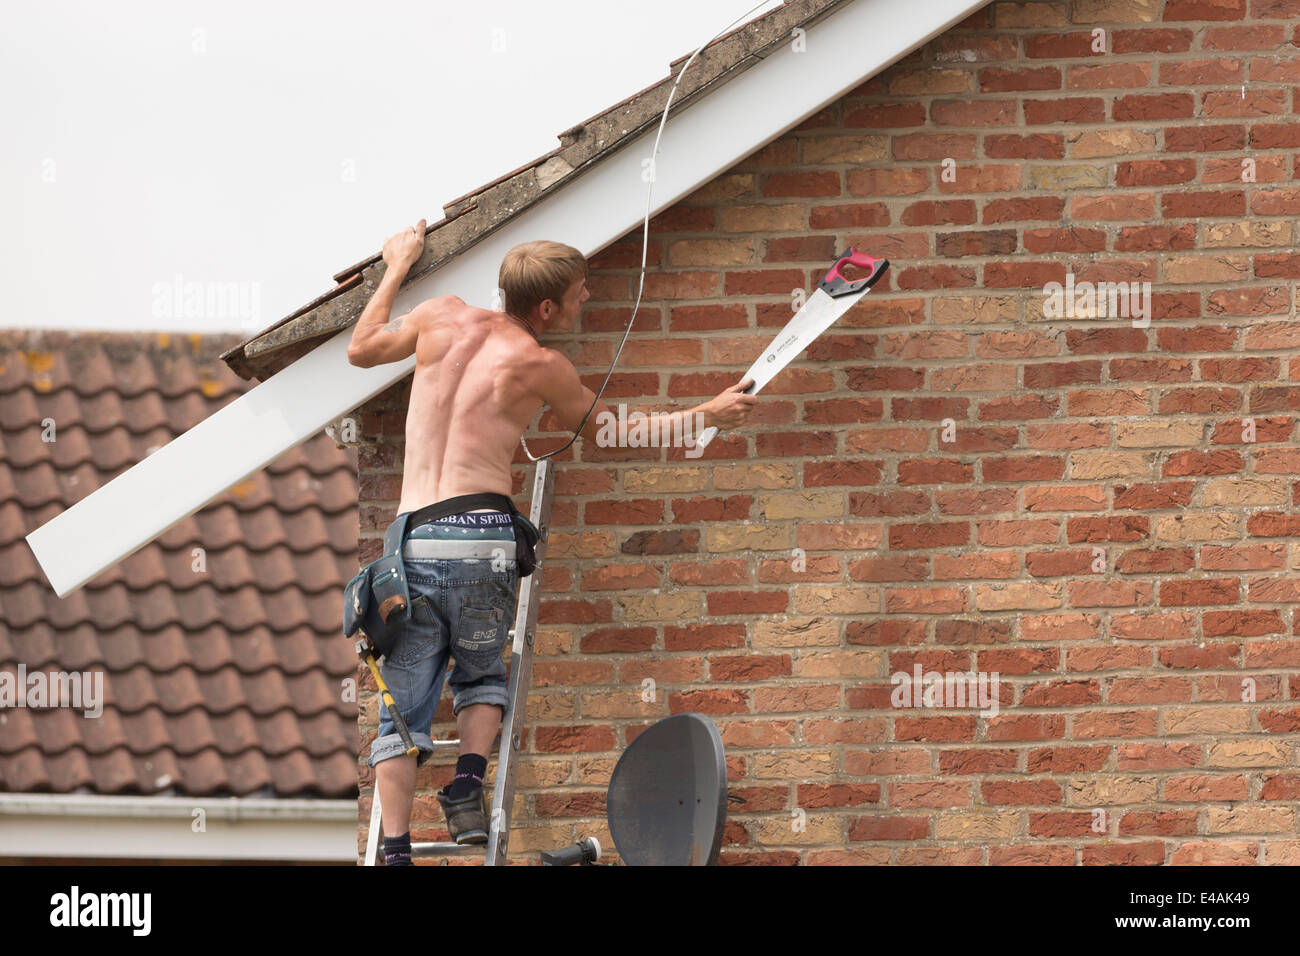 Workman Replacing Fascia Boards On A House Roof Stock